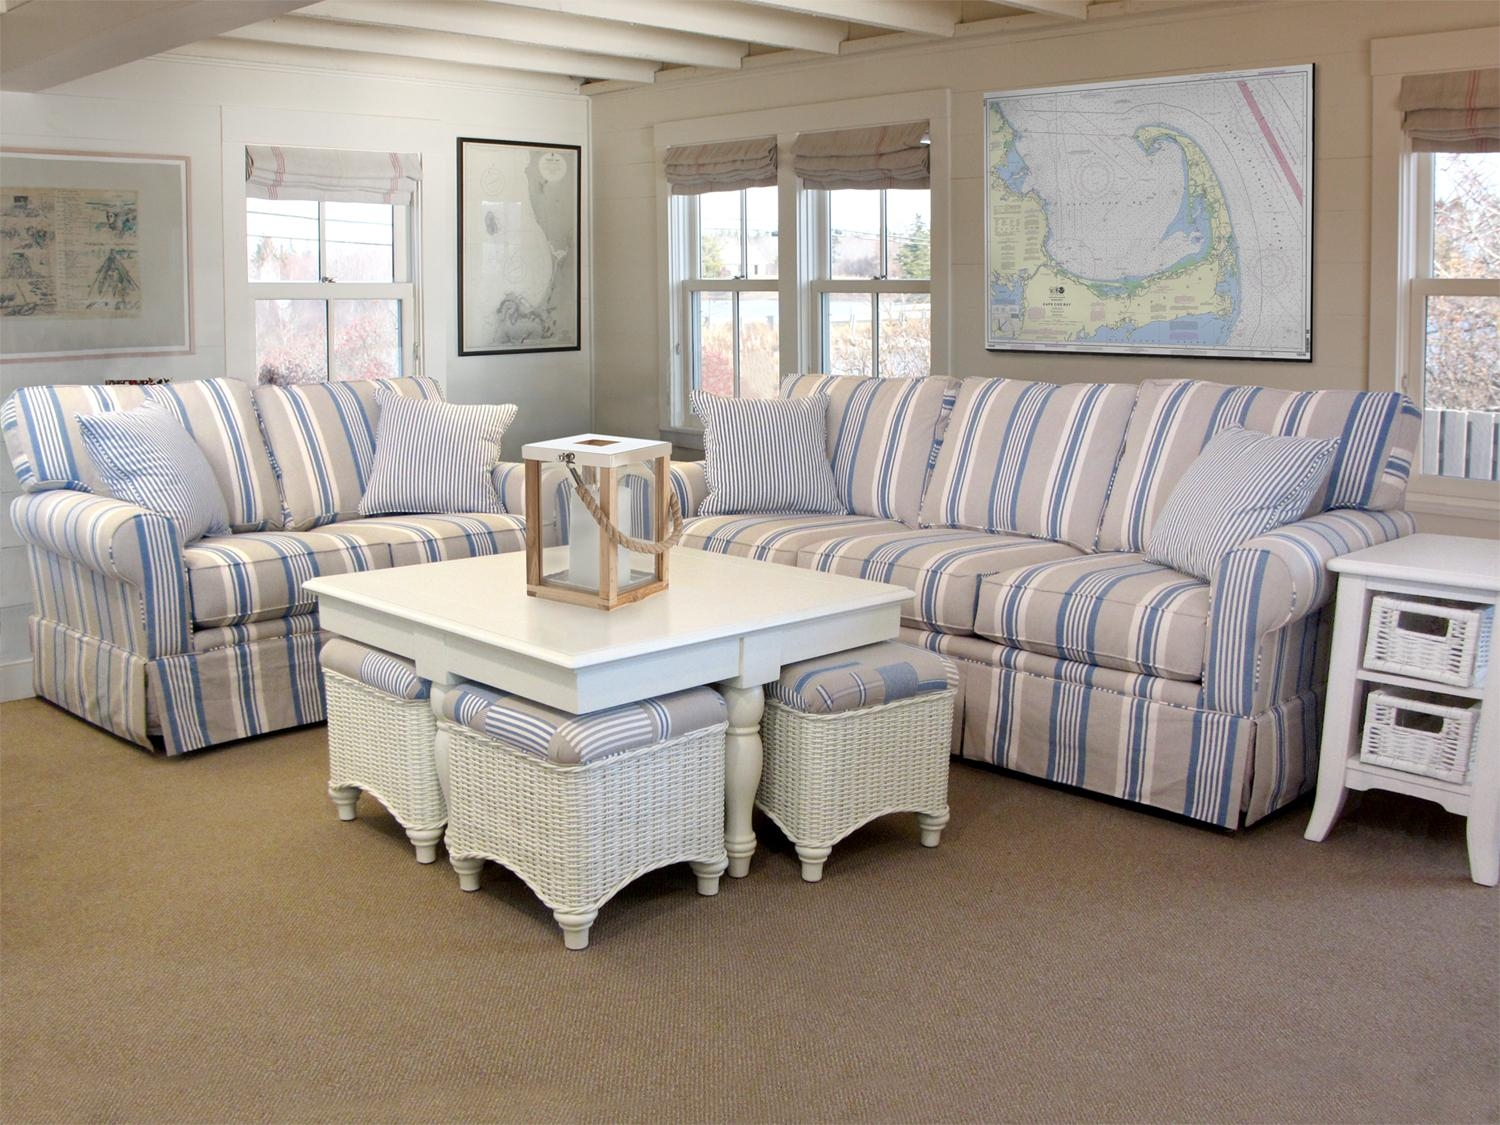 Blue And White Chair 20 Top Blue And White Striped Sofas Sofa Ideas